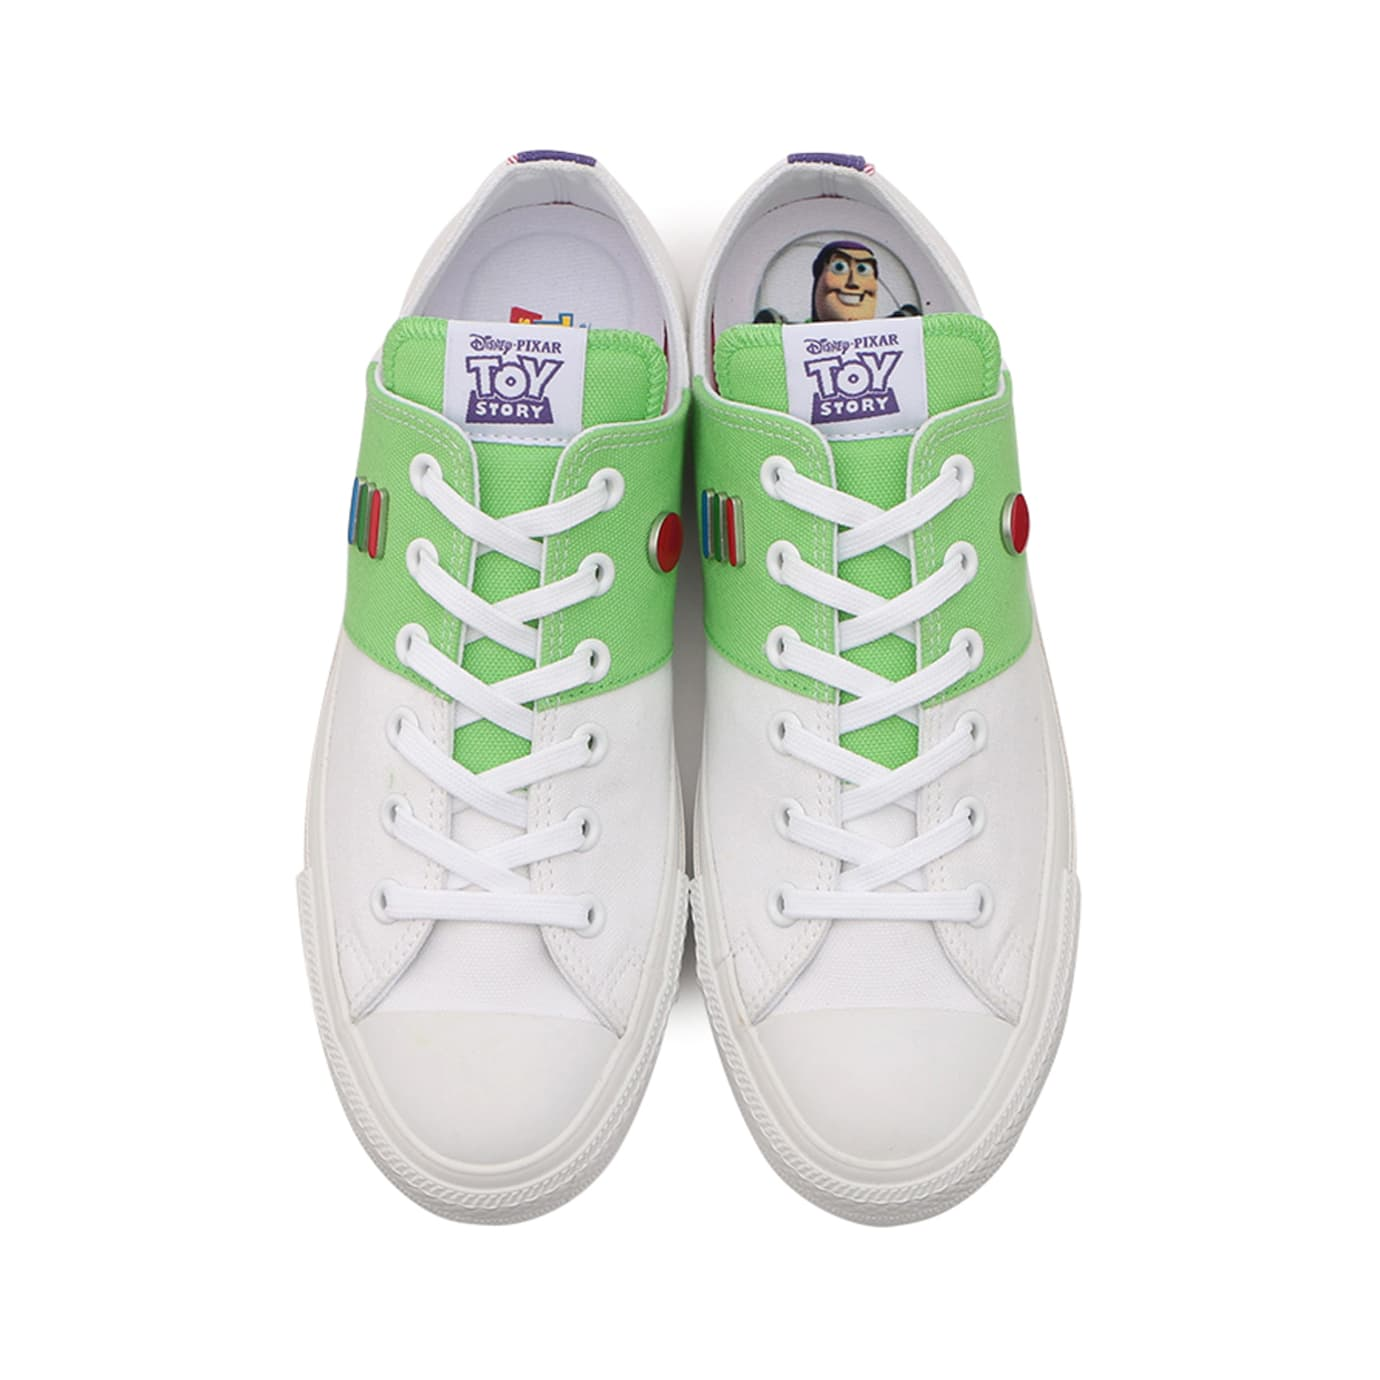 7a39709546 Image via atmos · Toy Story x Converse Chuck Taylor All Star Low 32862650 3